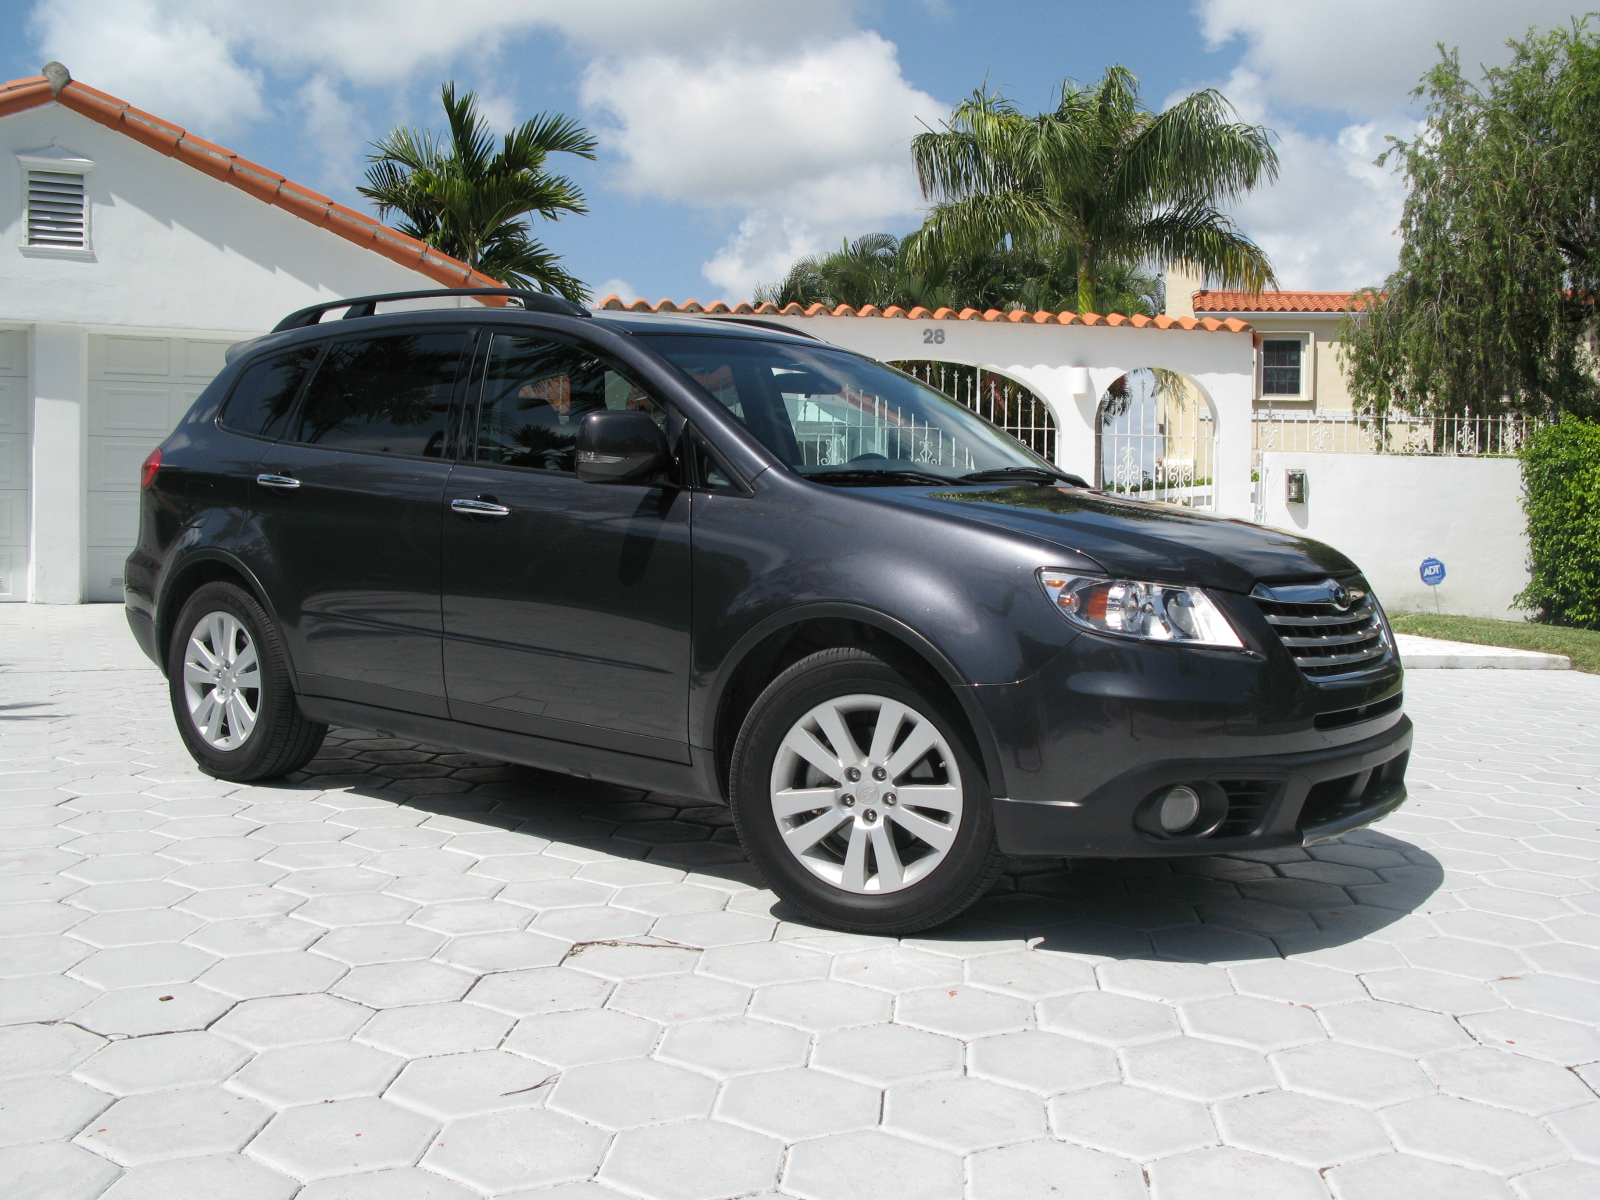 2008 subaru tribeca limited gallery 262936 top speed. Black Bedroom Furniture Sets. Home Design Ideas